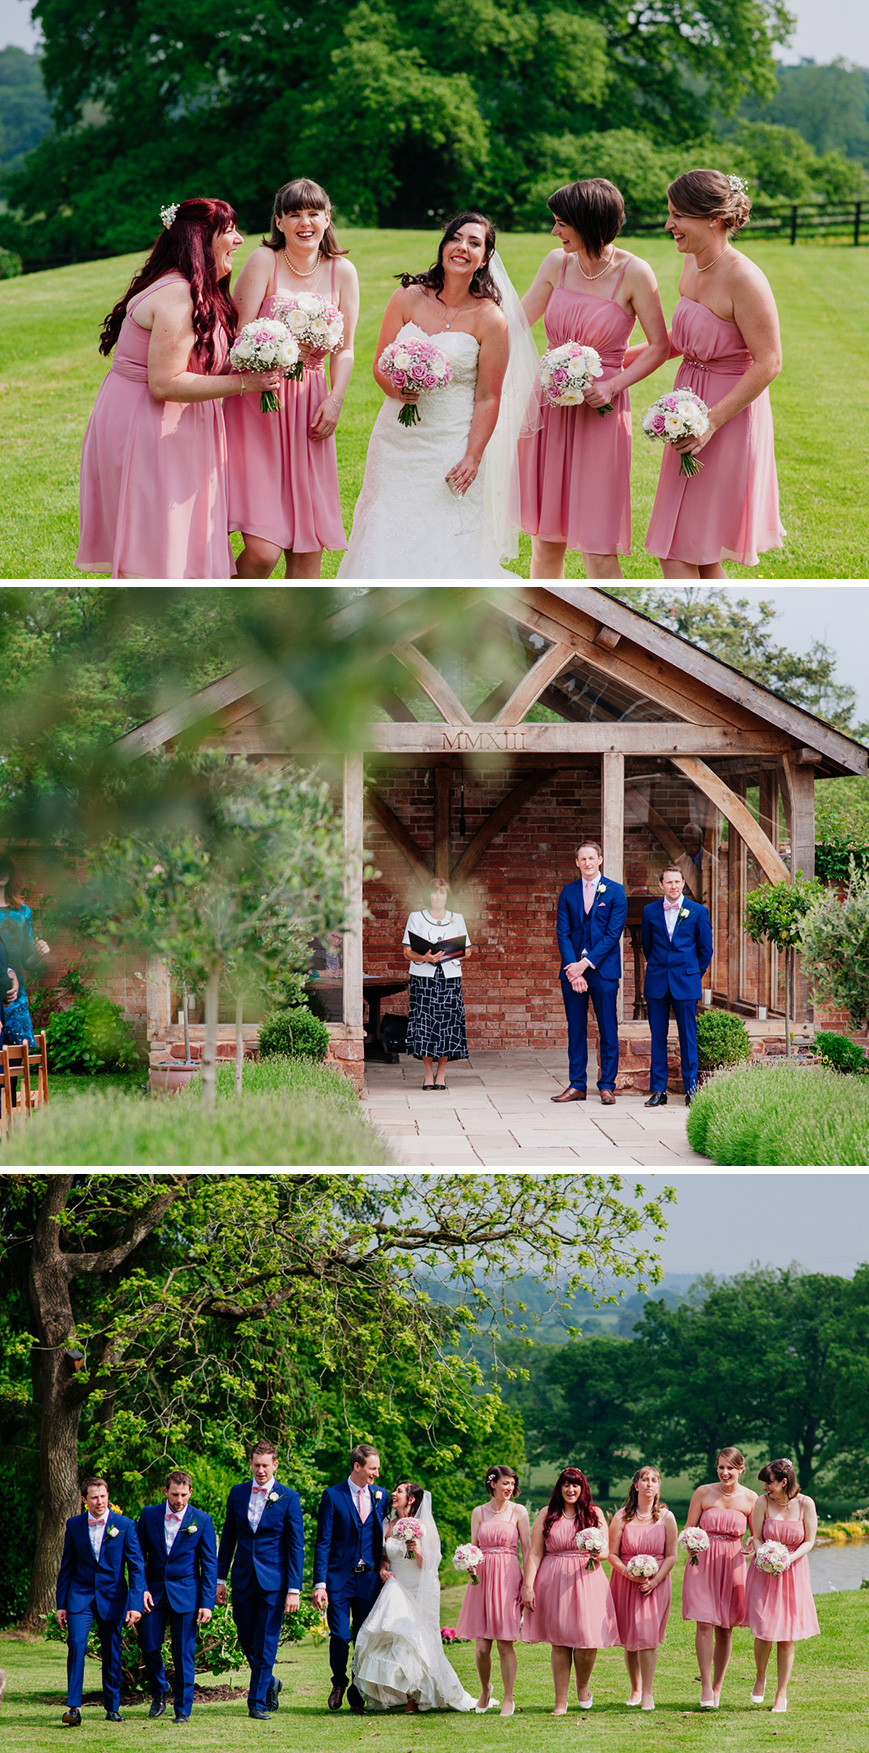 Real Wedding - Zoe and Richard's Laid-Back Wedding At Upton Barn | CHWV